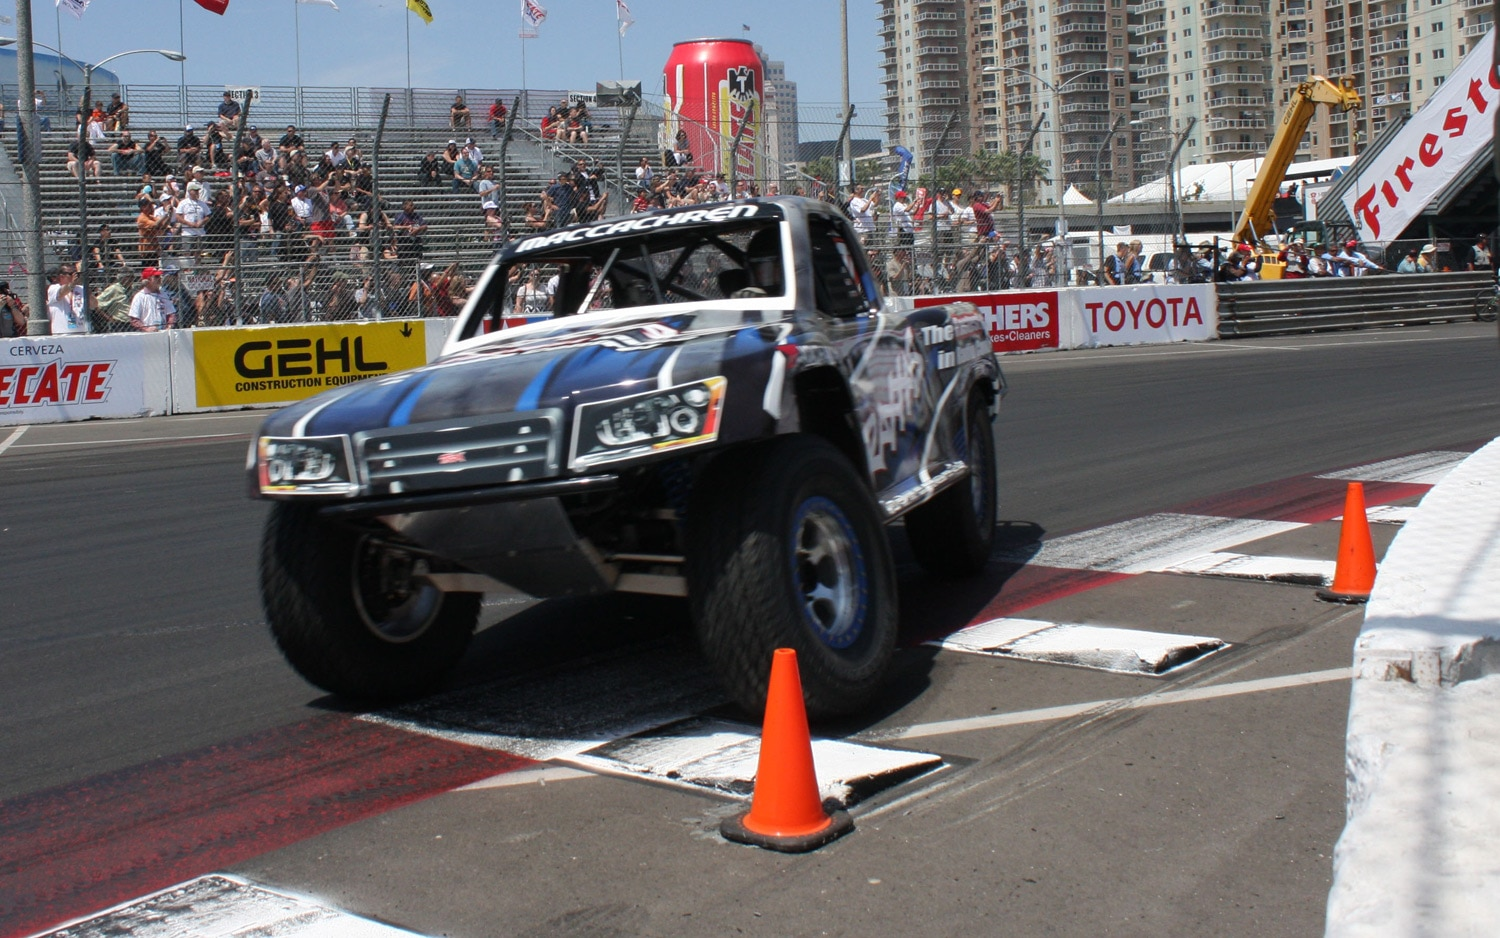 1304OR 06+Robby Gordon SST Stadium Super Trucks 2013 Long Beach Grand Prix Rob MacCachren 2